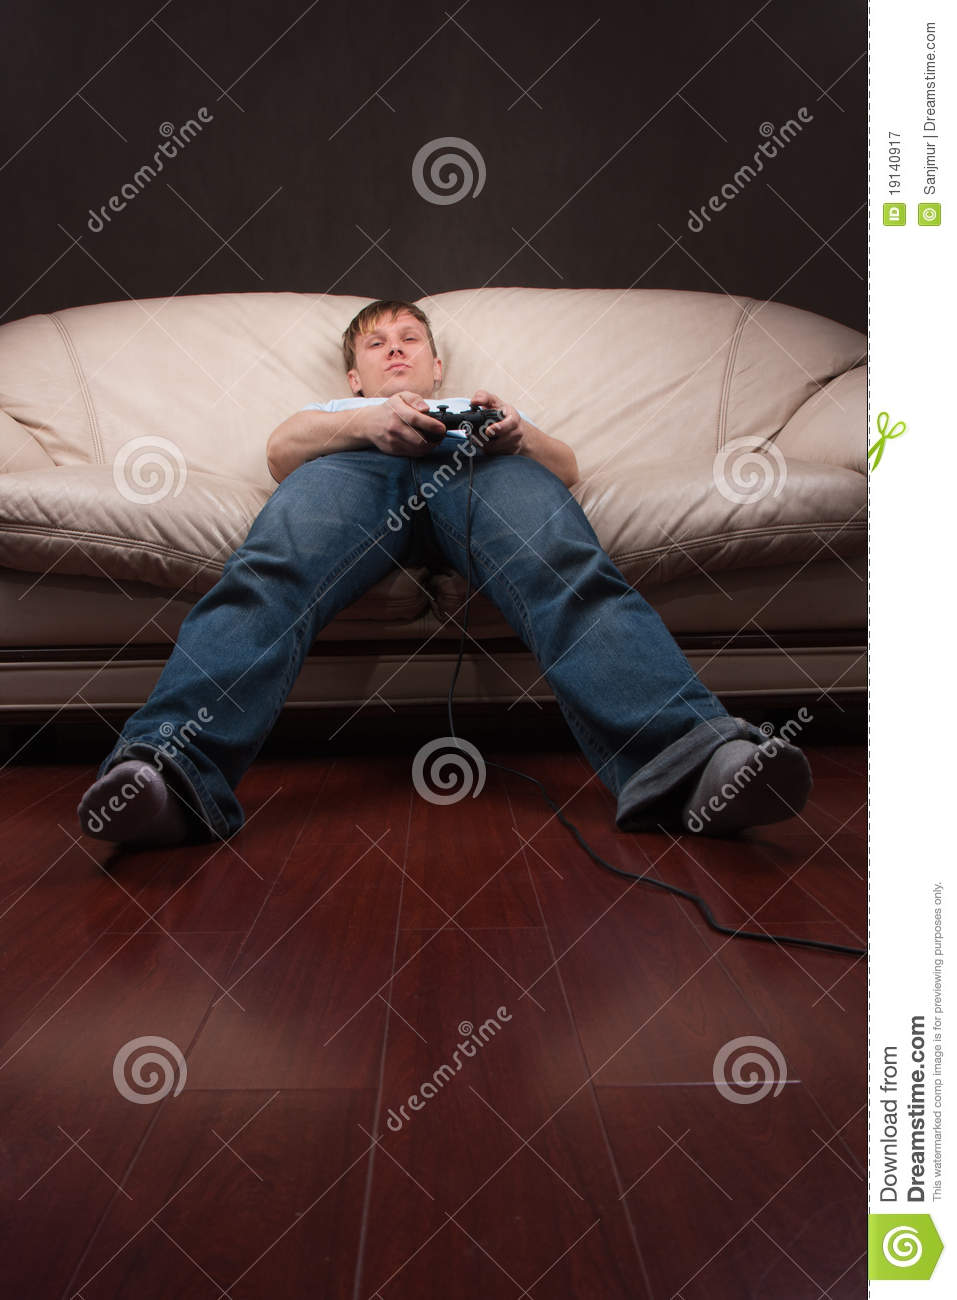 lazy gamer royalty free stock photography